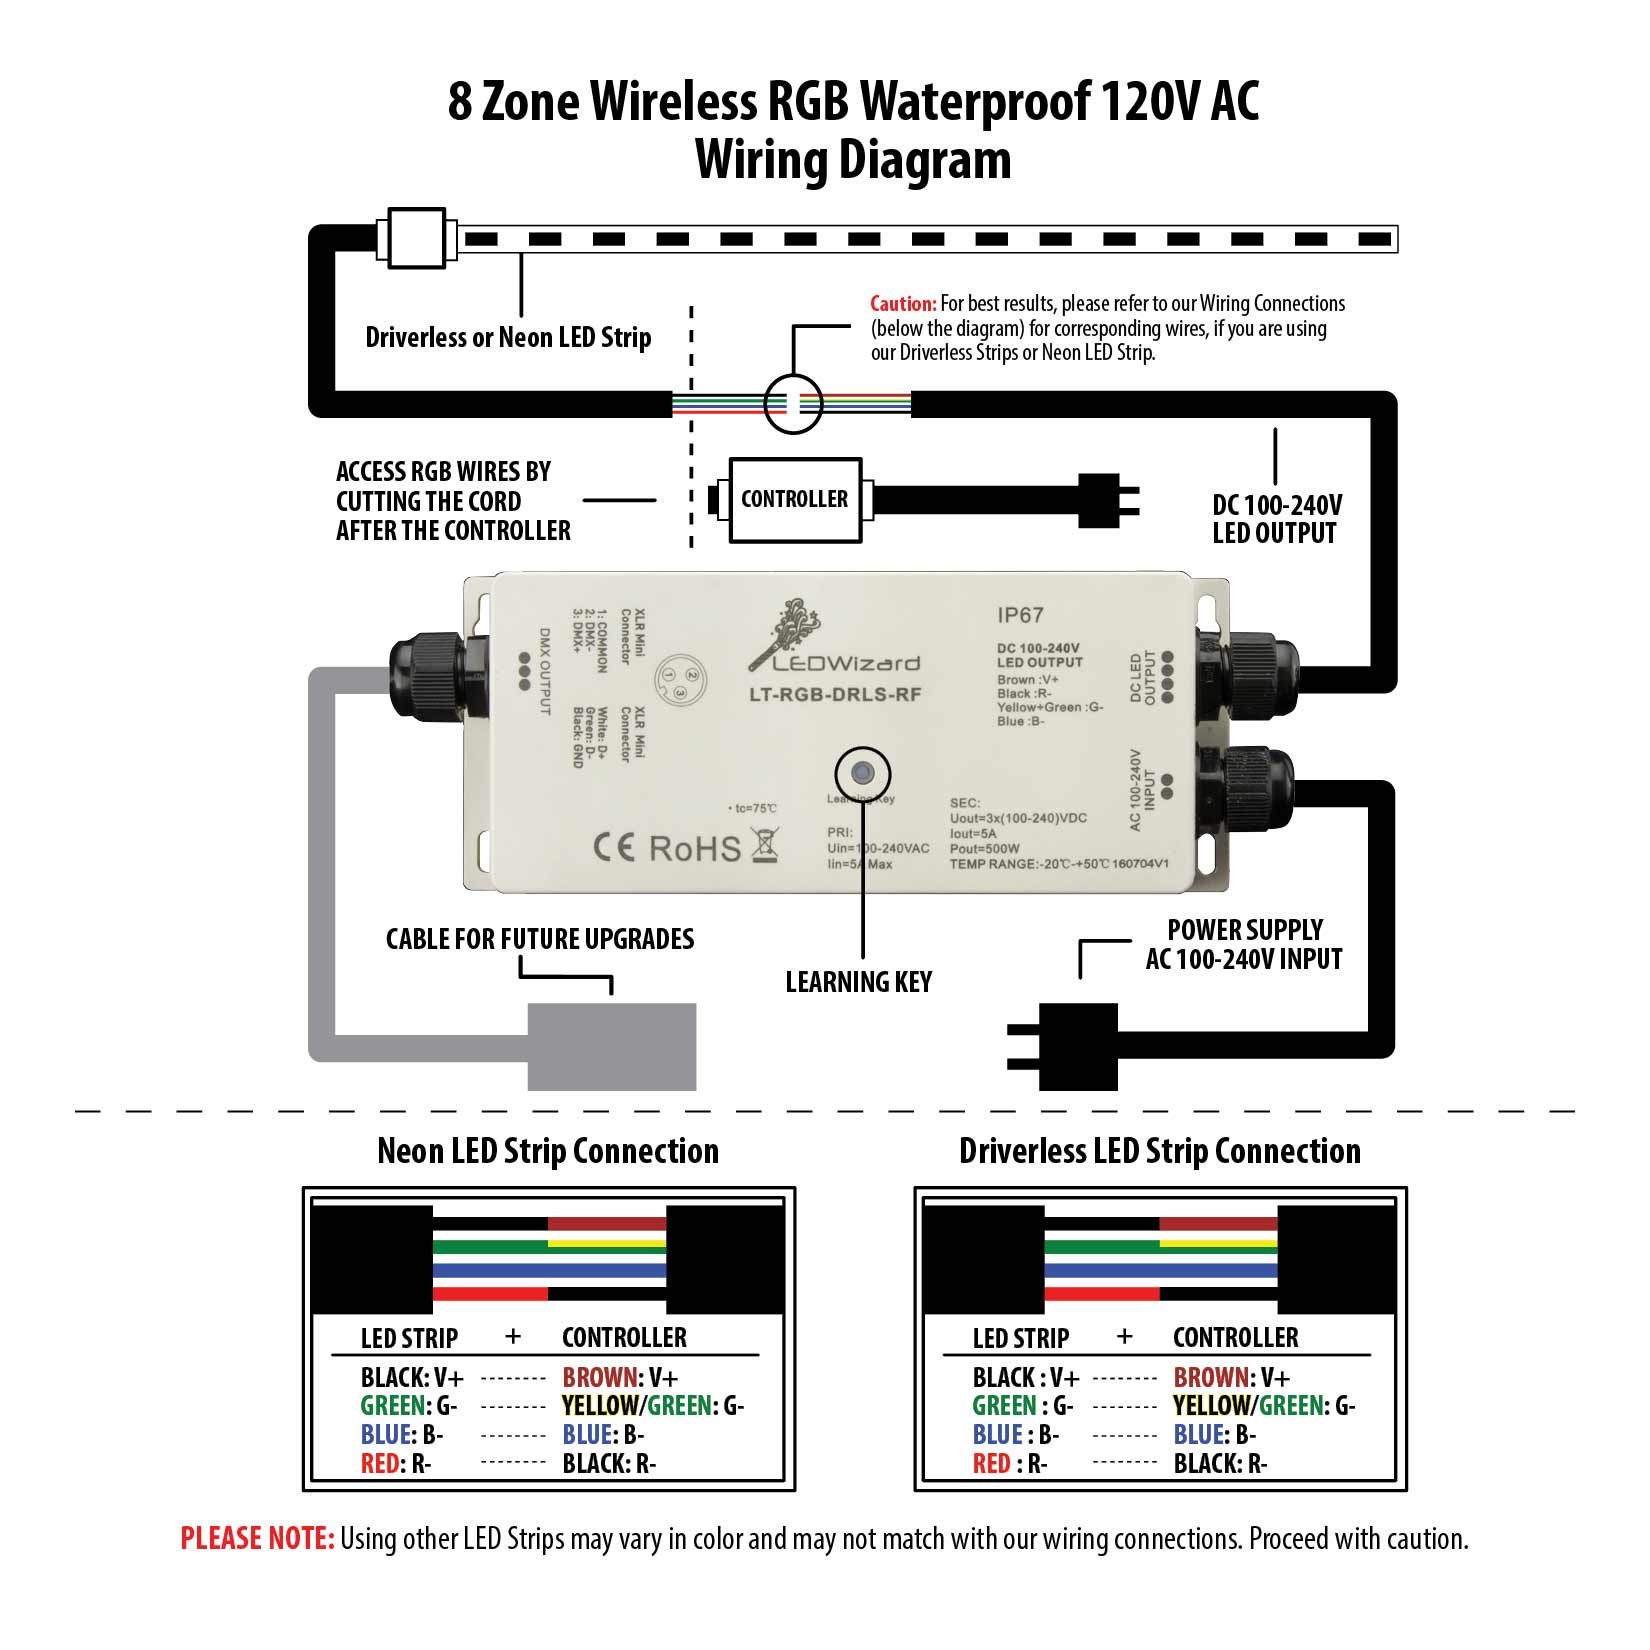 wiring diagram lights in parallel 1999 chevy silverado transfer case receiver for 120v ac 8 zone wireless waterproof rgb controller